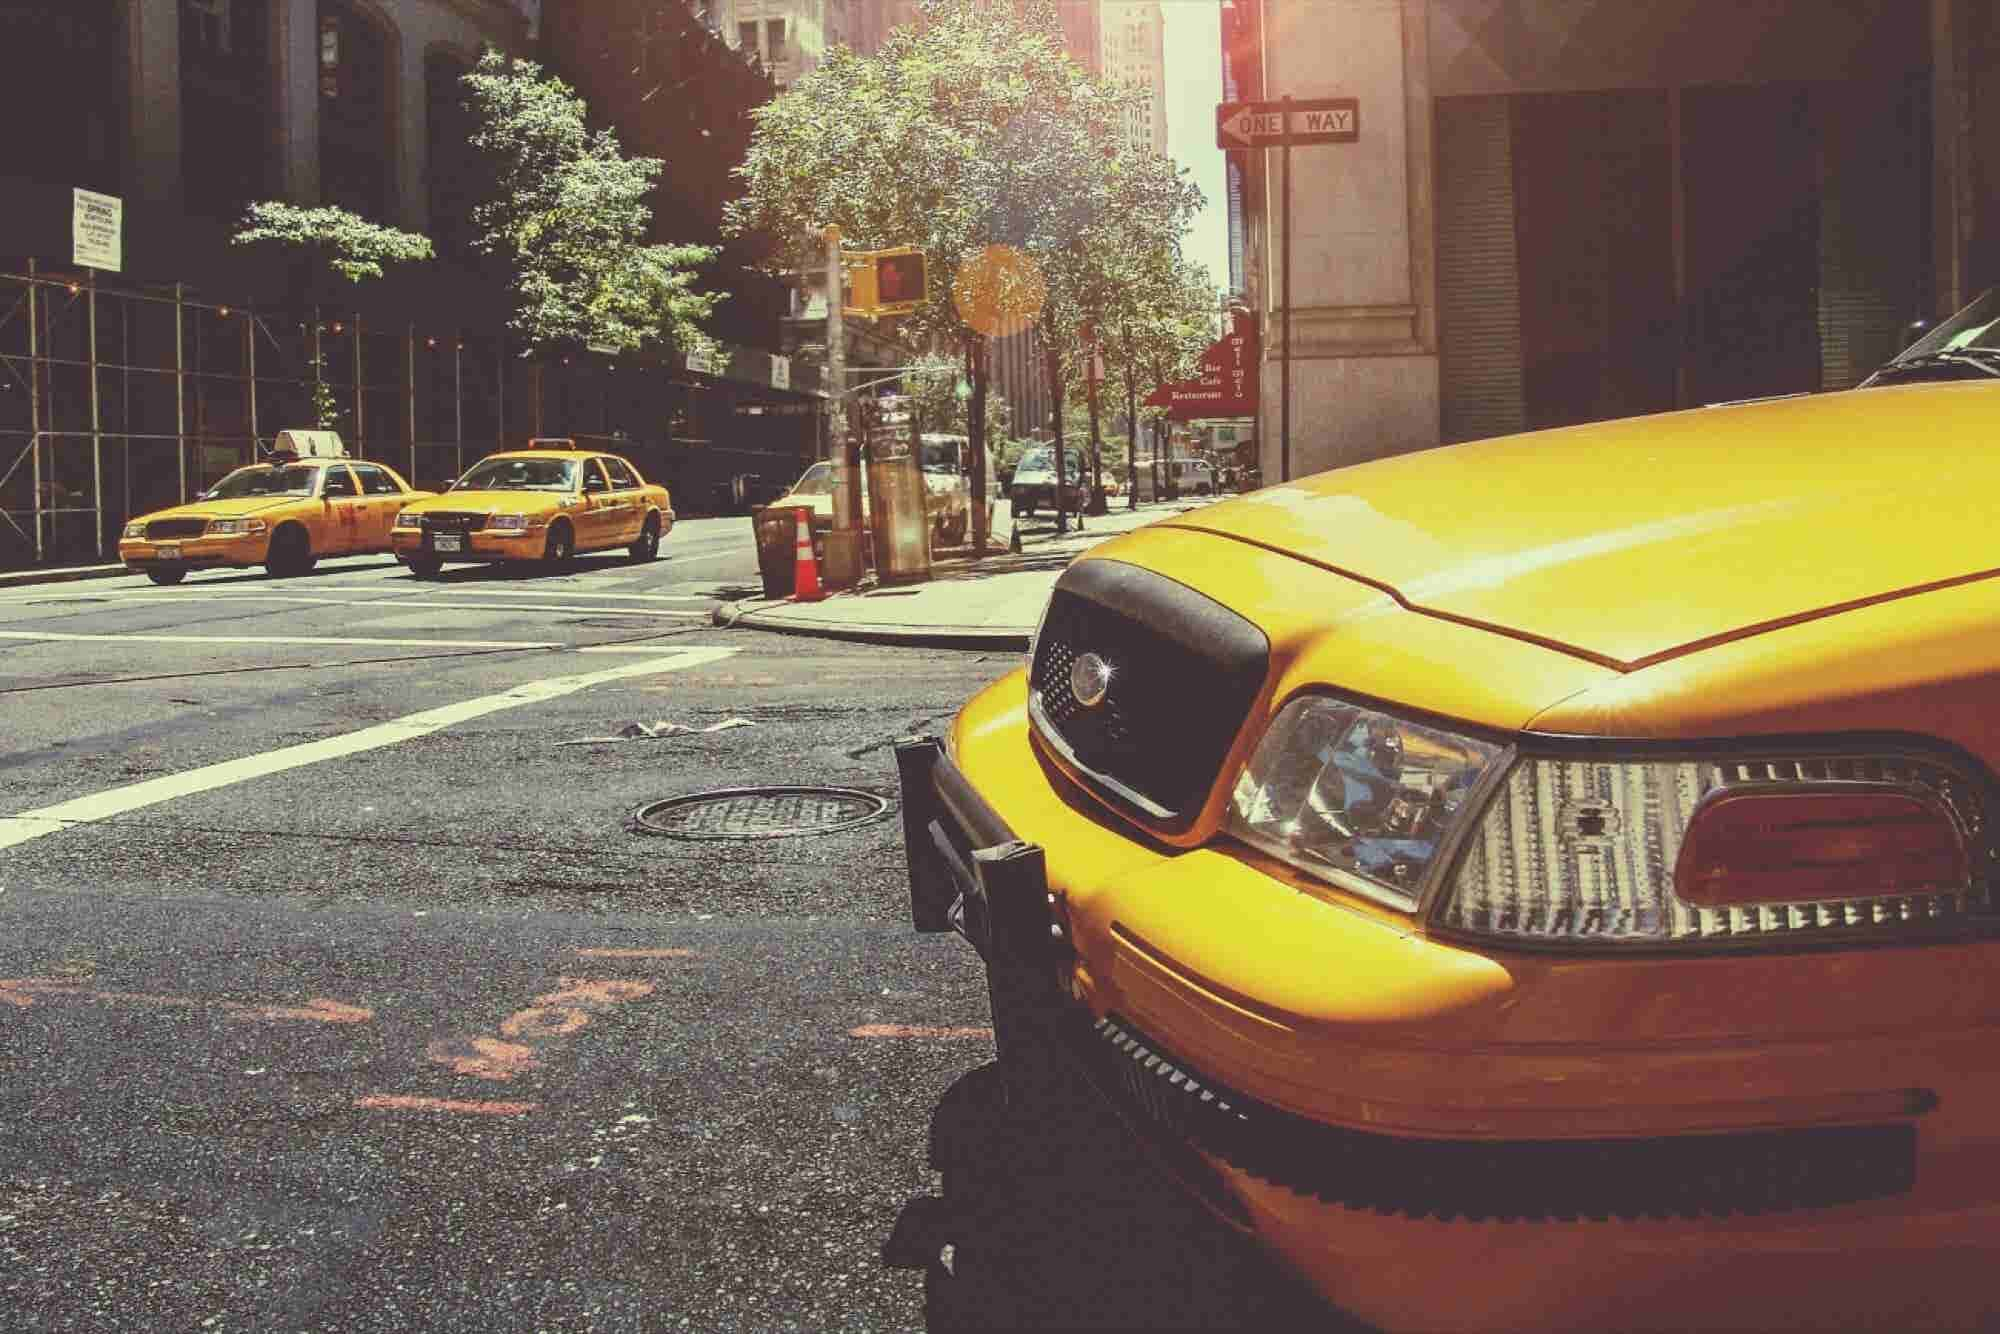 NYC Taxi Industry Takes Aim at Uber With New App